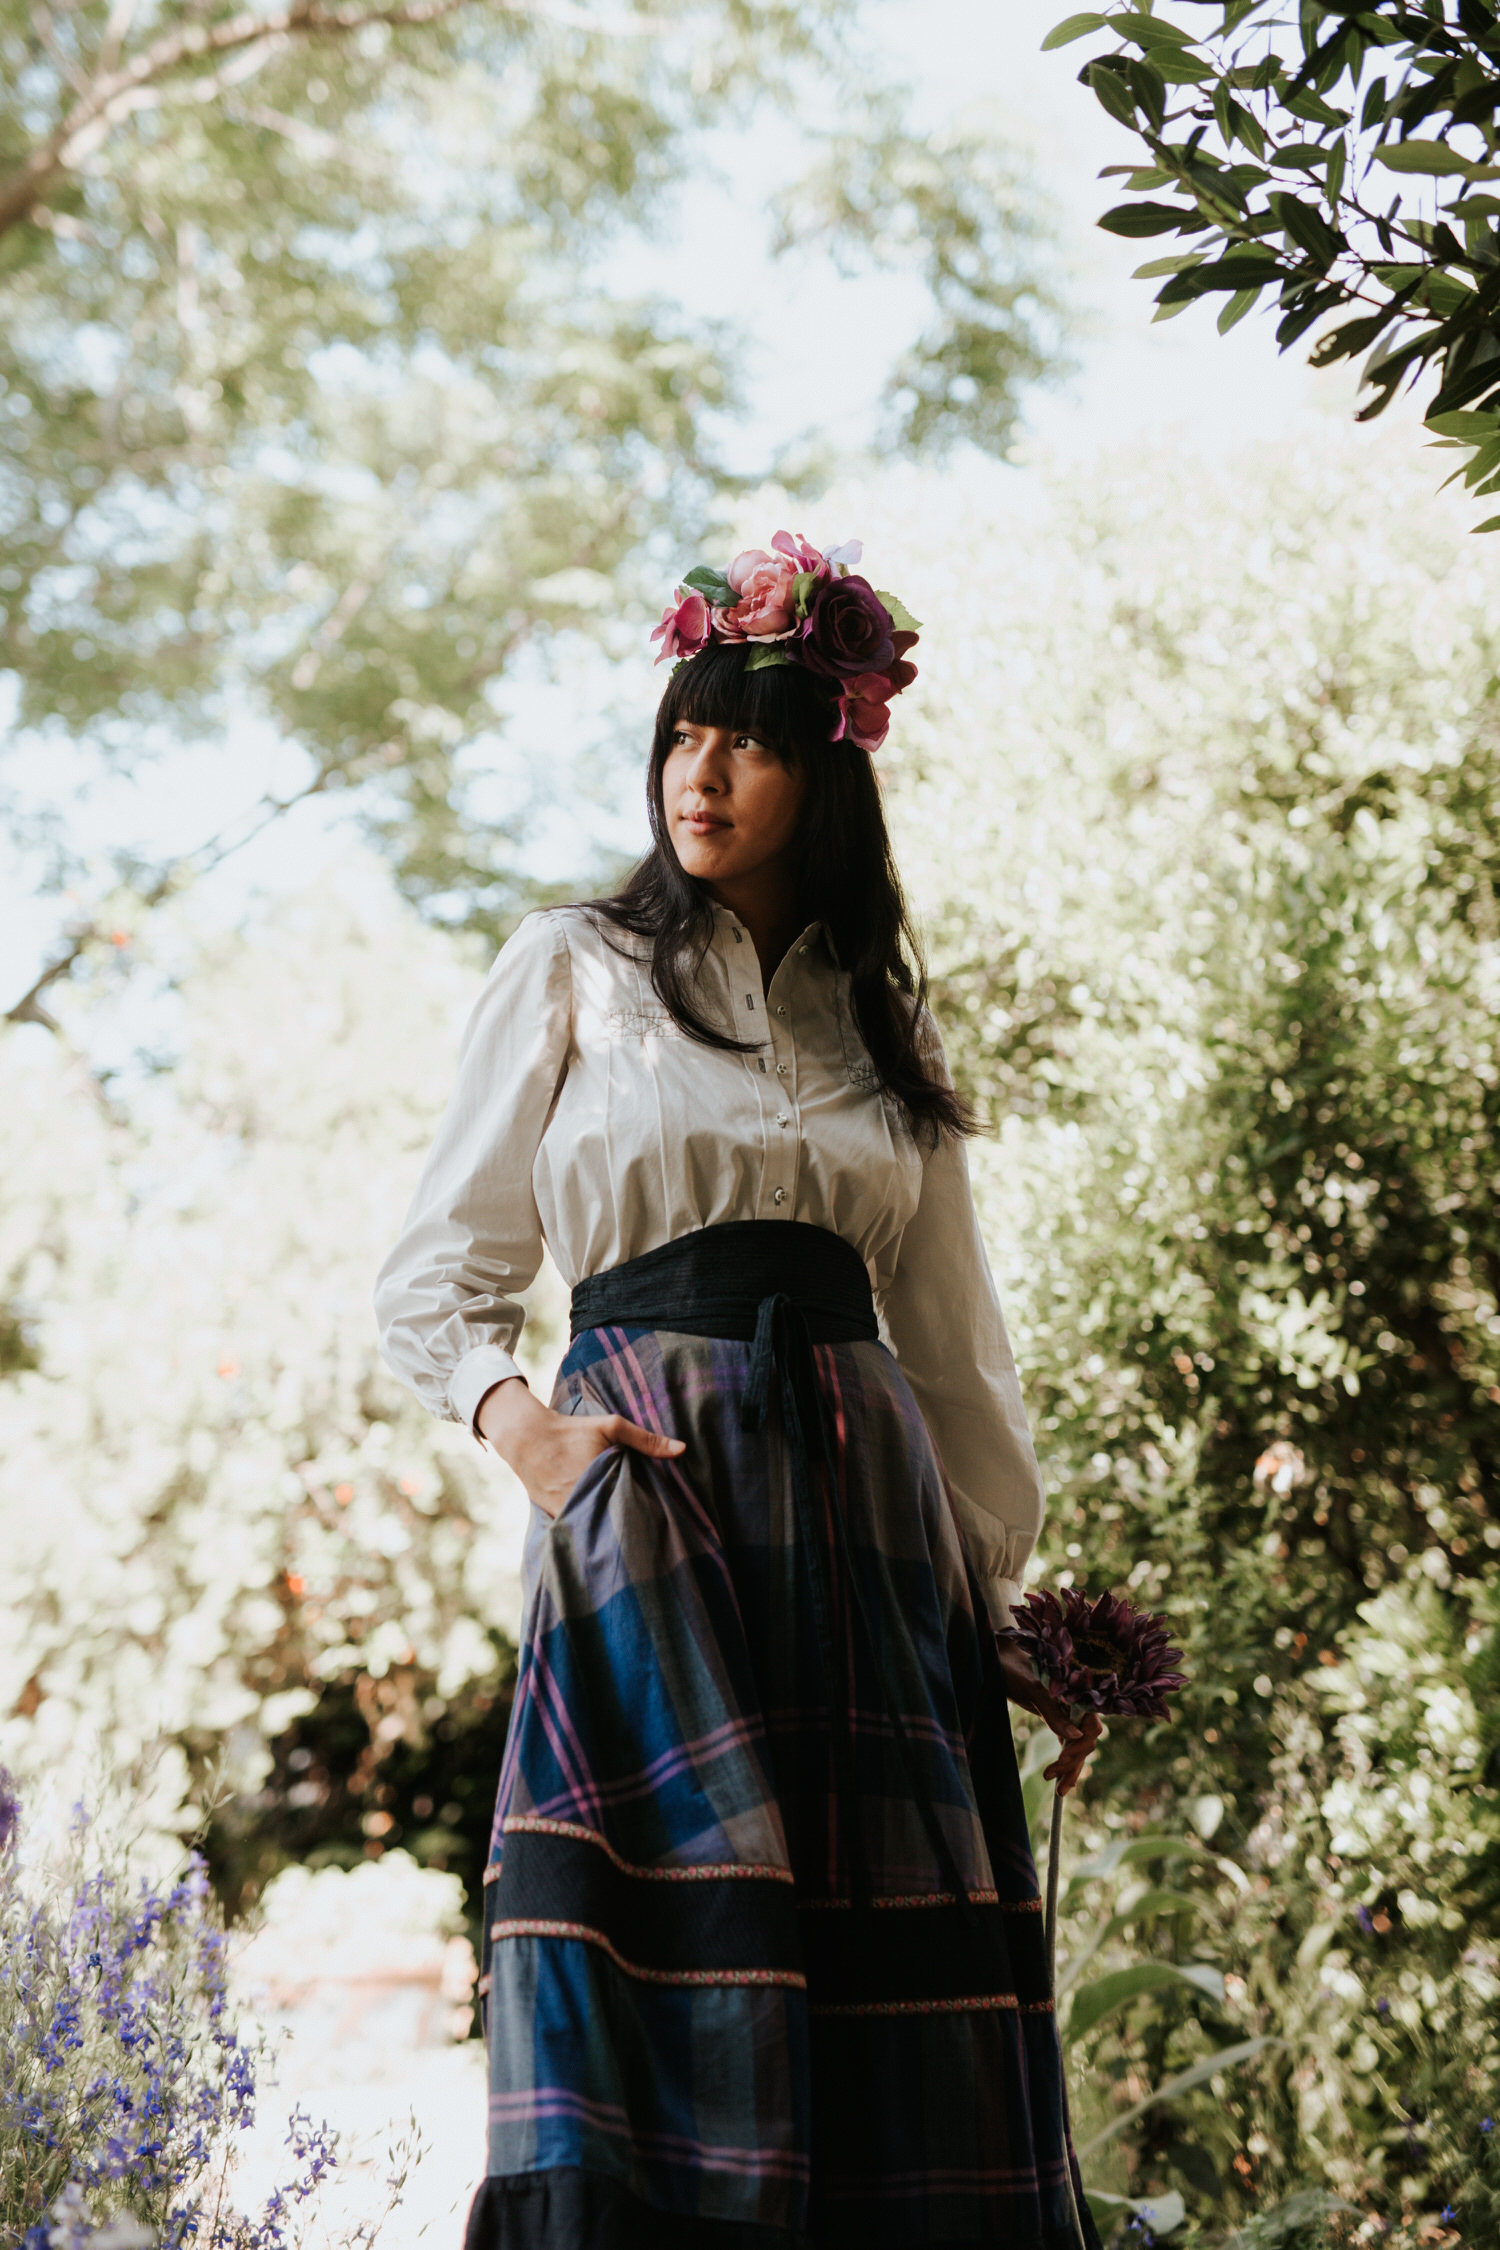 Woman in flower crown and Rat Des Champs vintage outfit